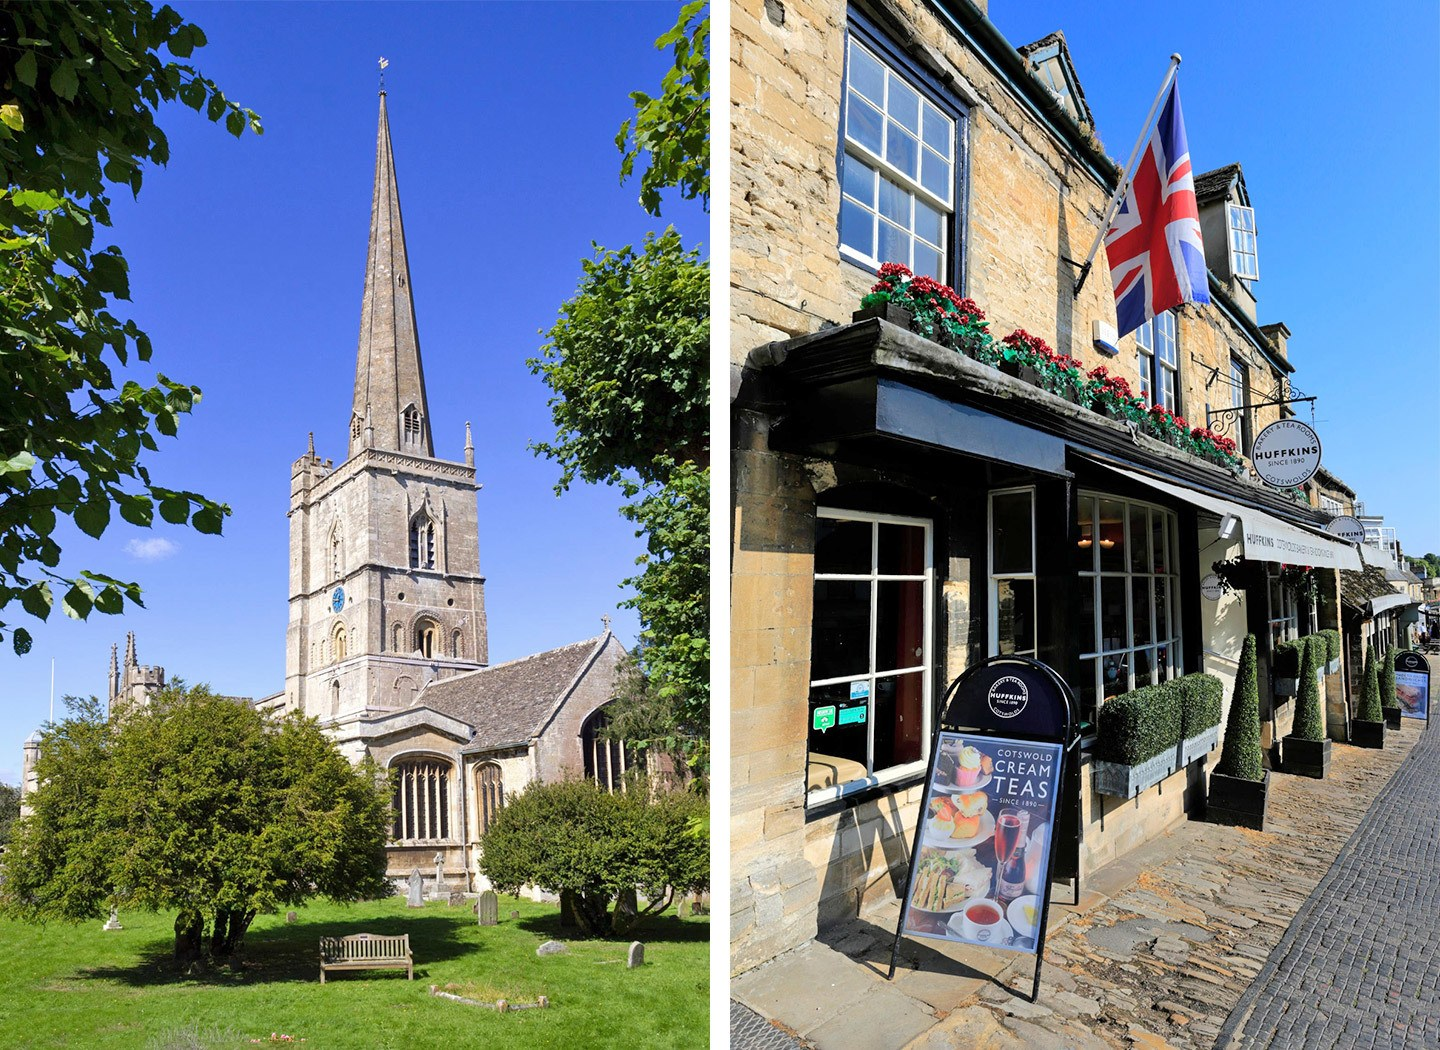 The church and Huffkins Bakery in Burford in the Cotswolds